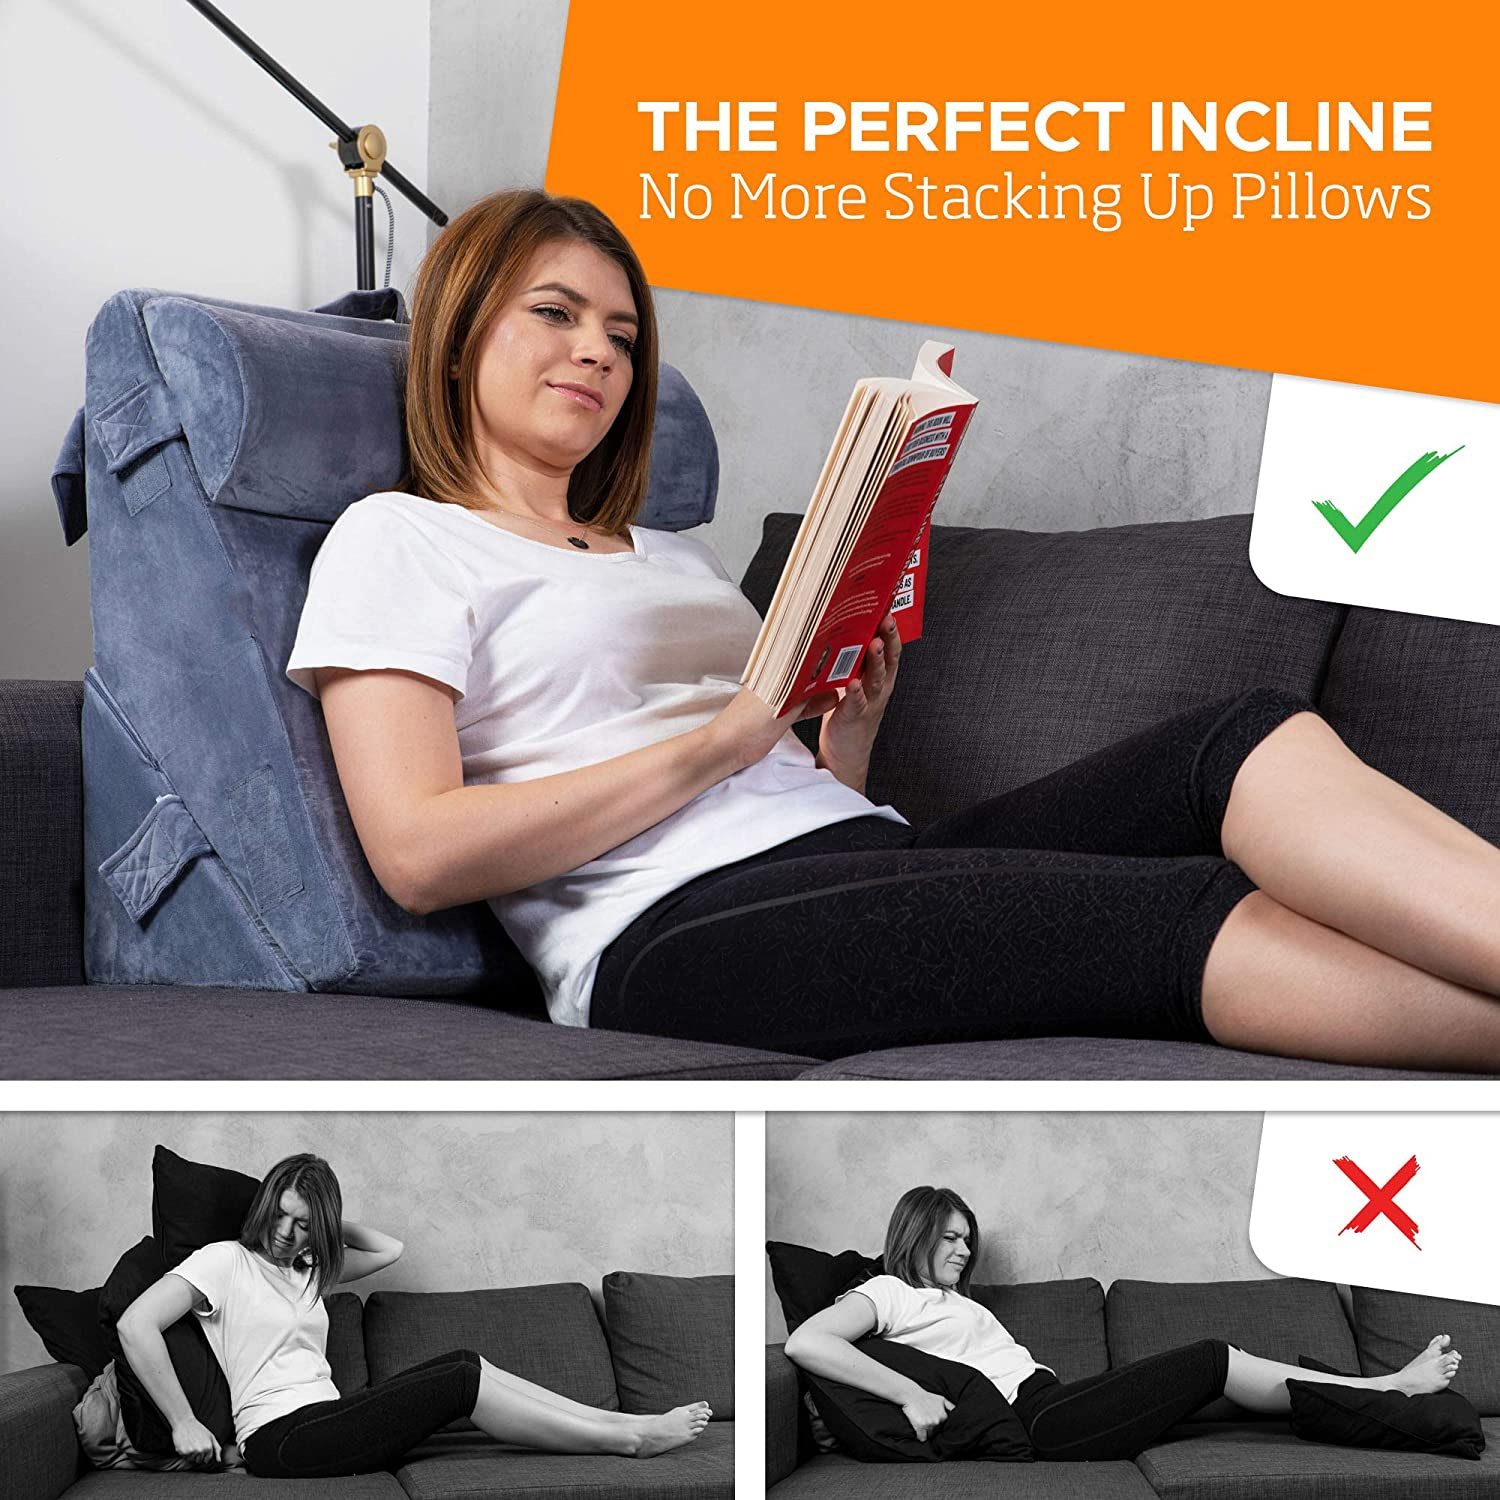 Orthopedic Bed Wedge Pillow for Back,Leg and Knee Pain Relief. Sitting Pillow for Reading, Adjustable Pillows